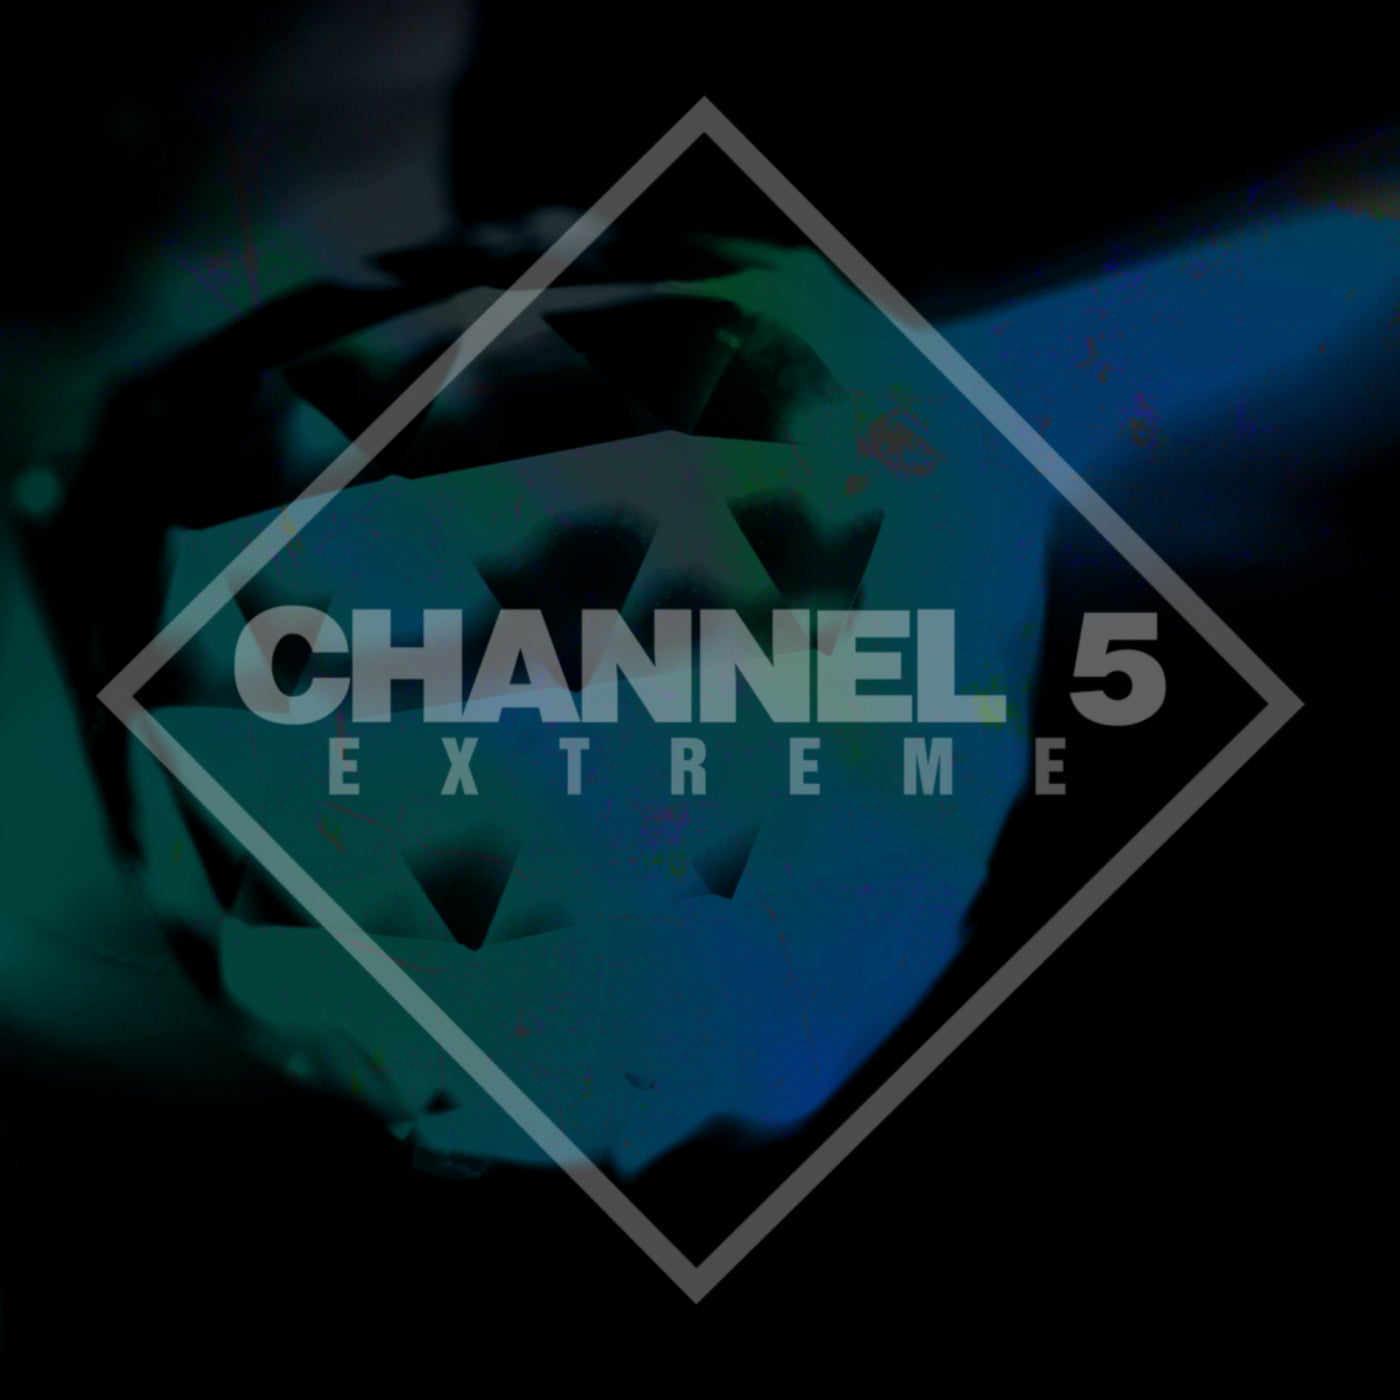 Channel 5 - Extreme (2021)